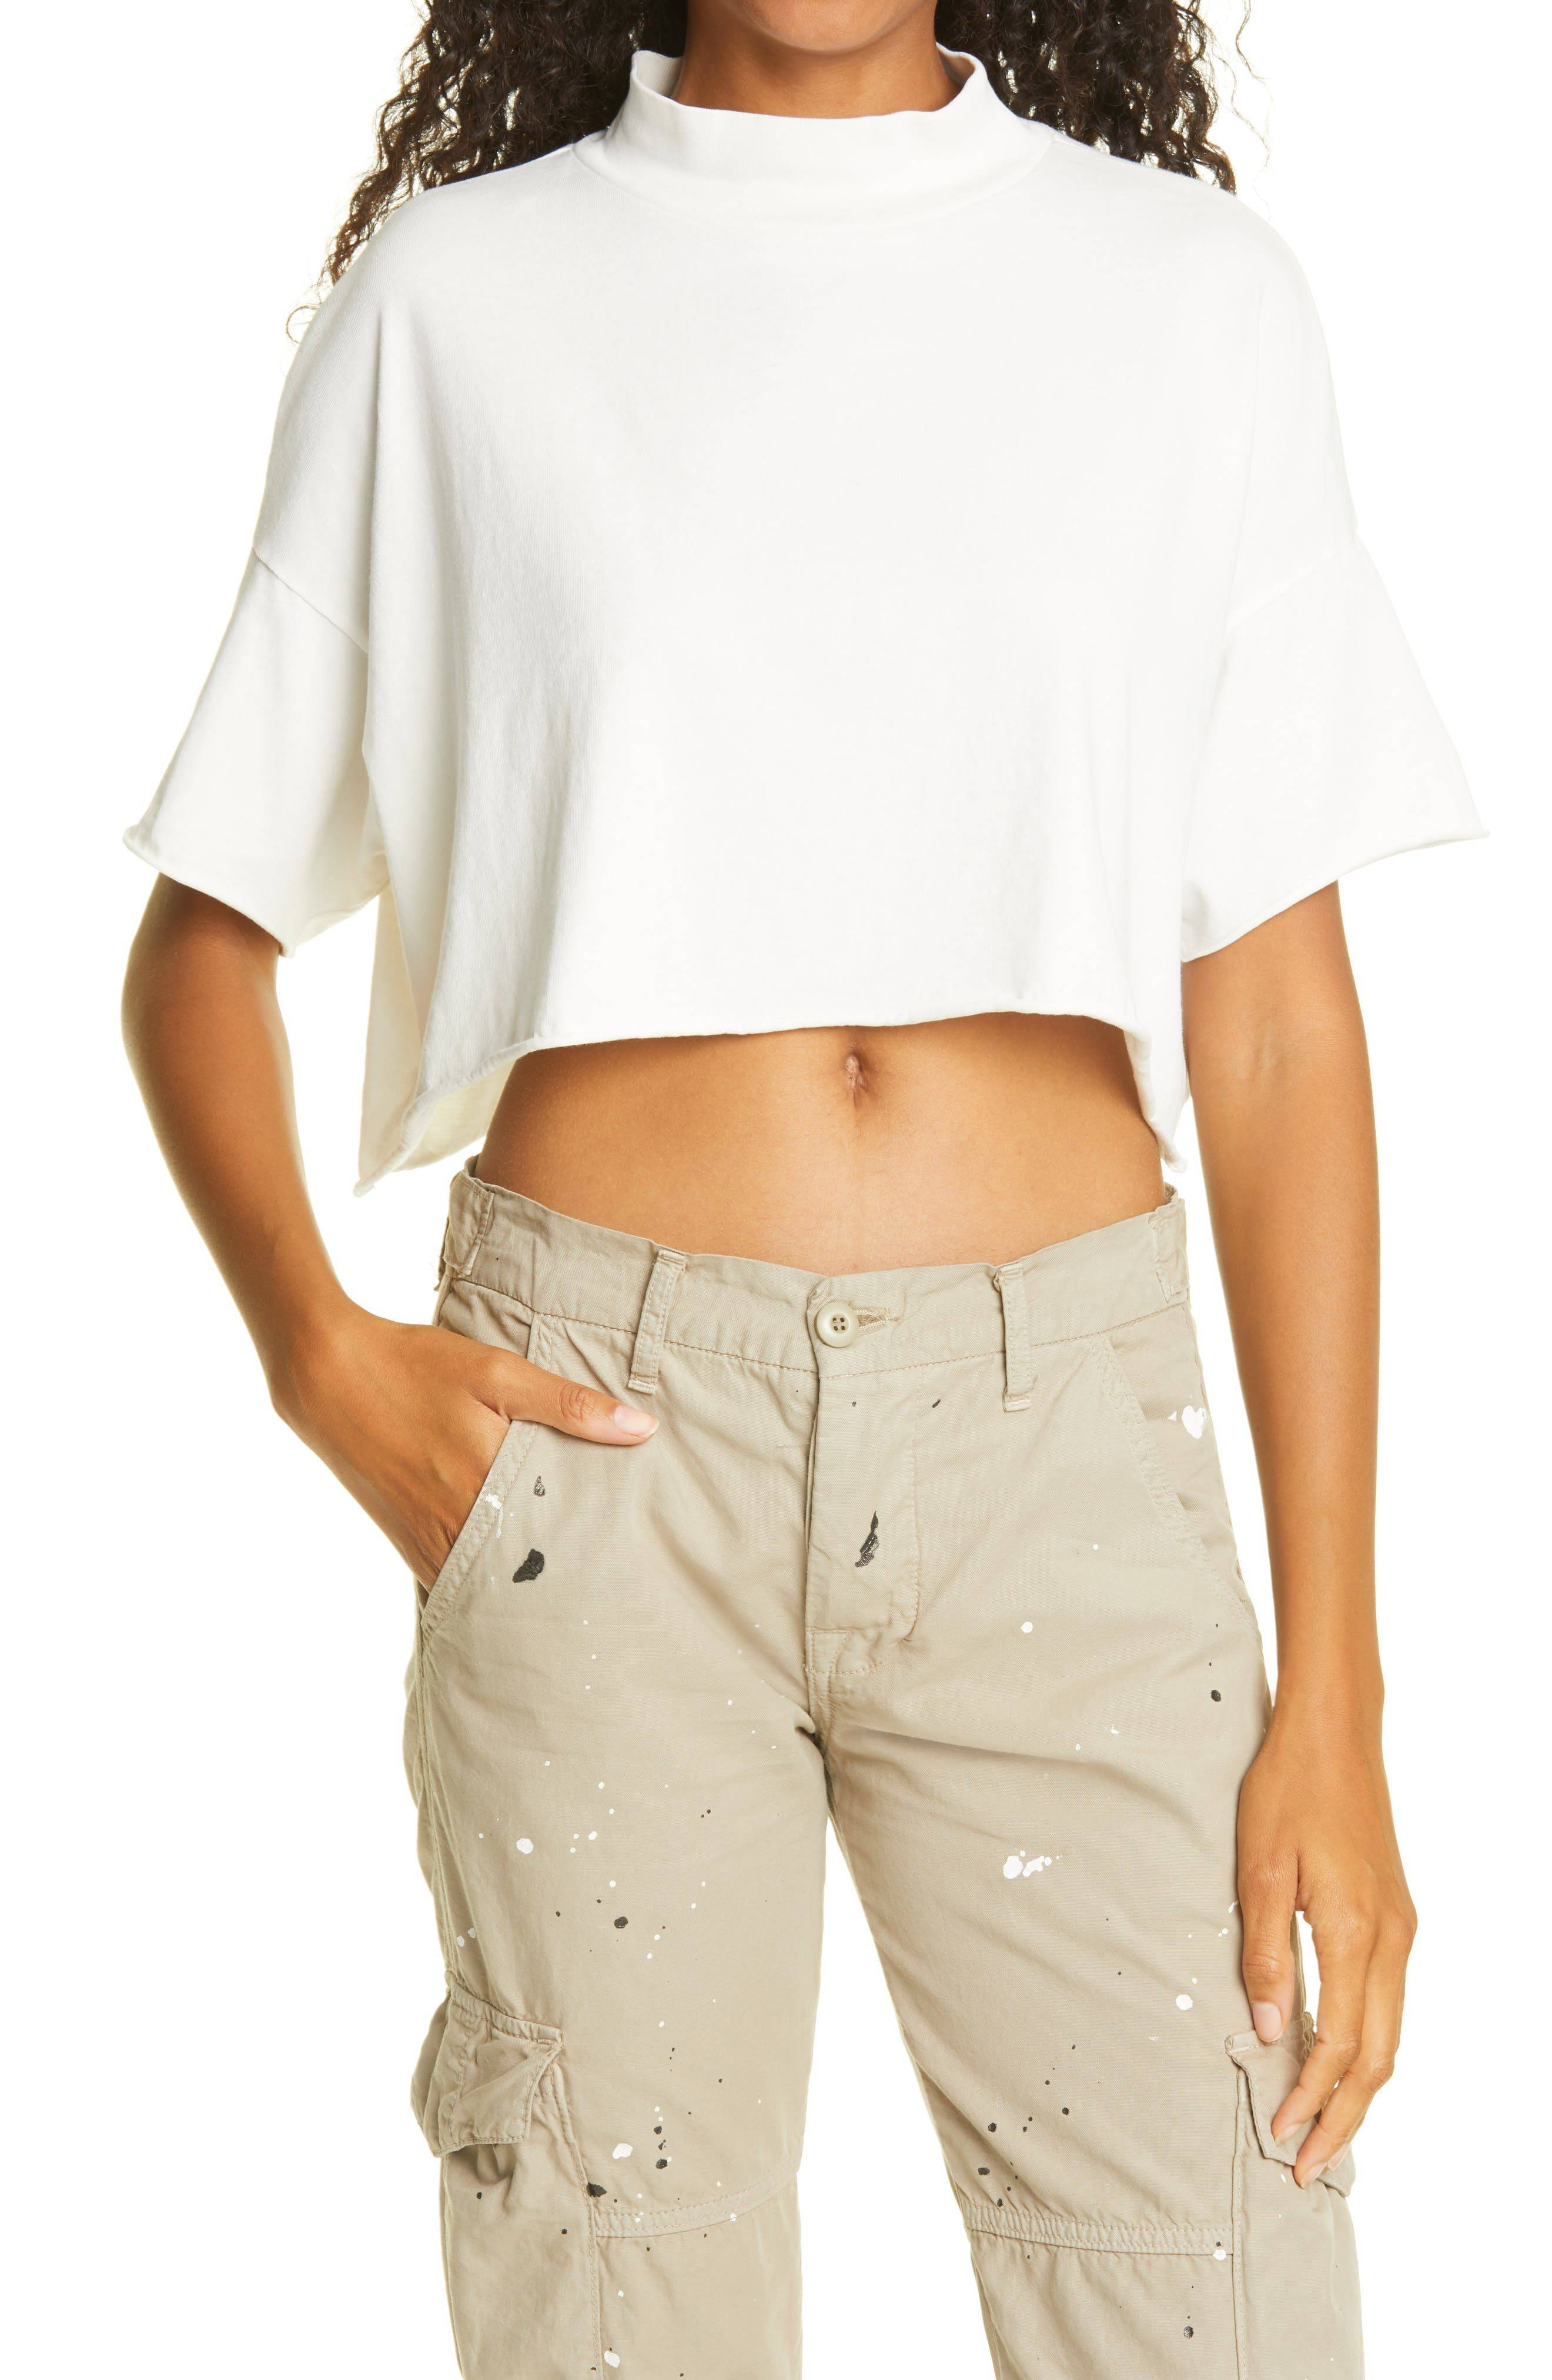 NSF Clothing Women's Nsf Clothing Cindy Mock Neck Crop Top, Size Petite - White